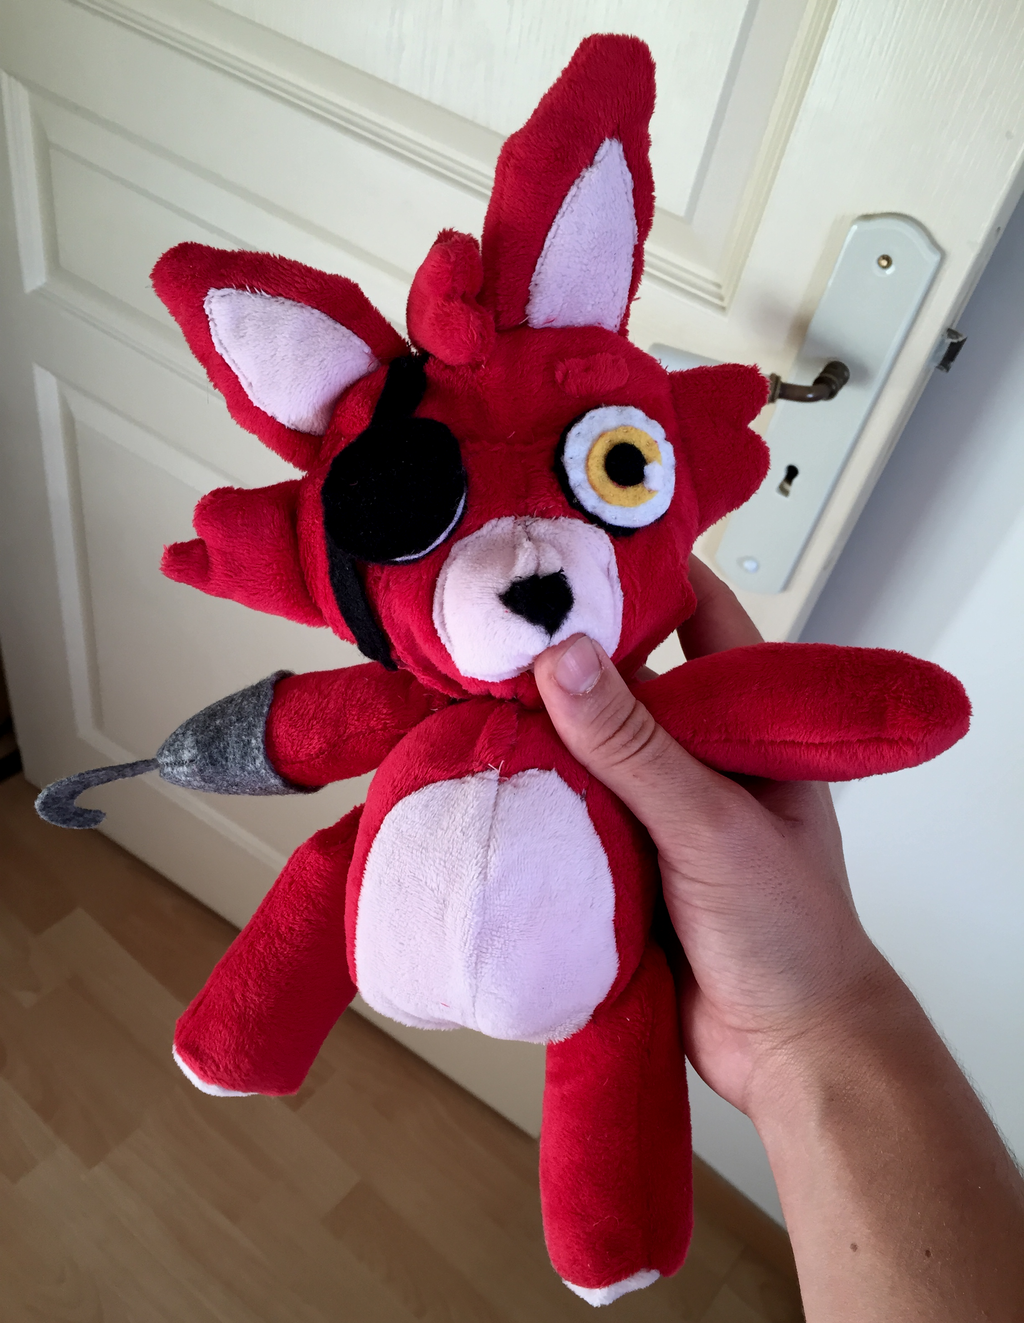 Mangle plushie for sale myideasbedroom com - Mangle Plushie For Sale Wallpaper Gallery Foxy And Mangle Plushie For Sale Myideasbedroom Com